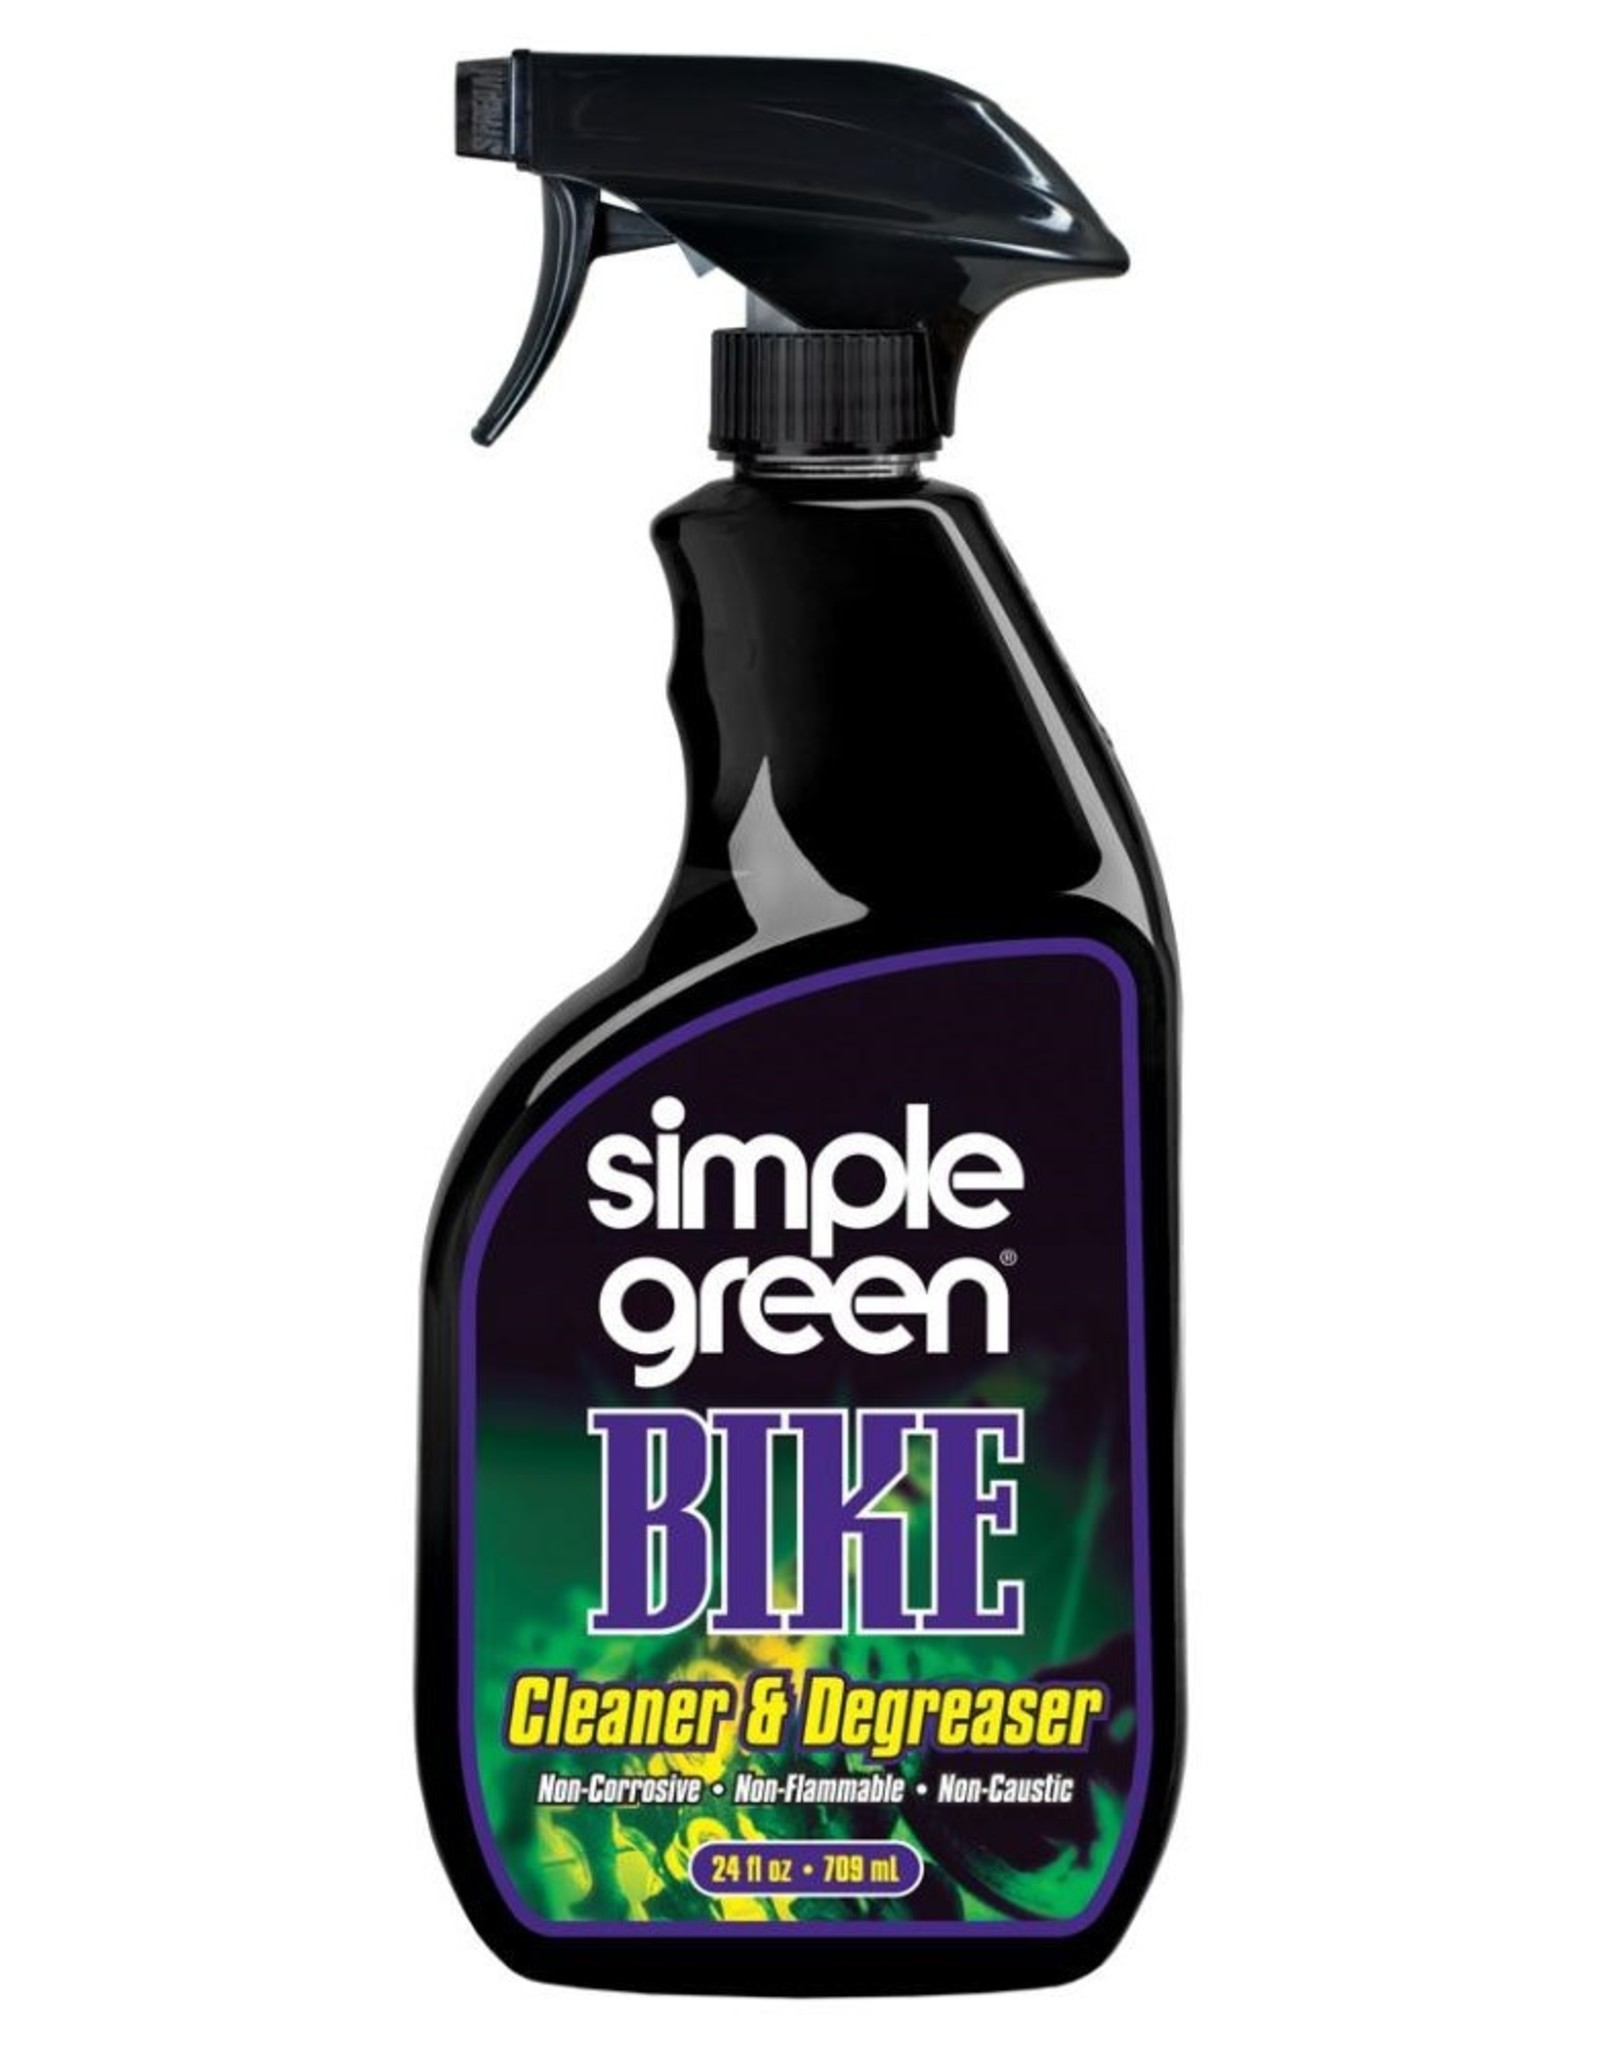 Simple Green Simple Green Bike Cleaner & Degreaser - 24oz